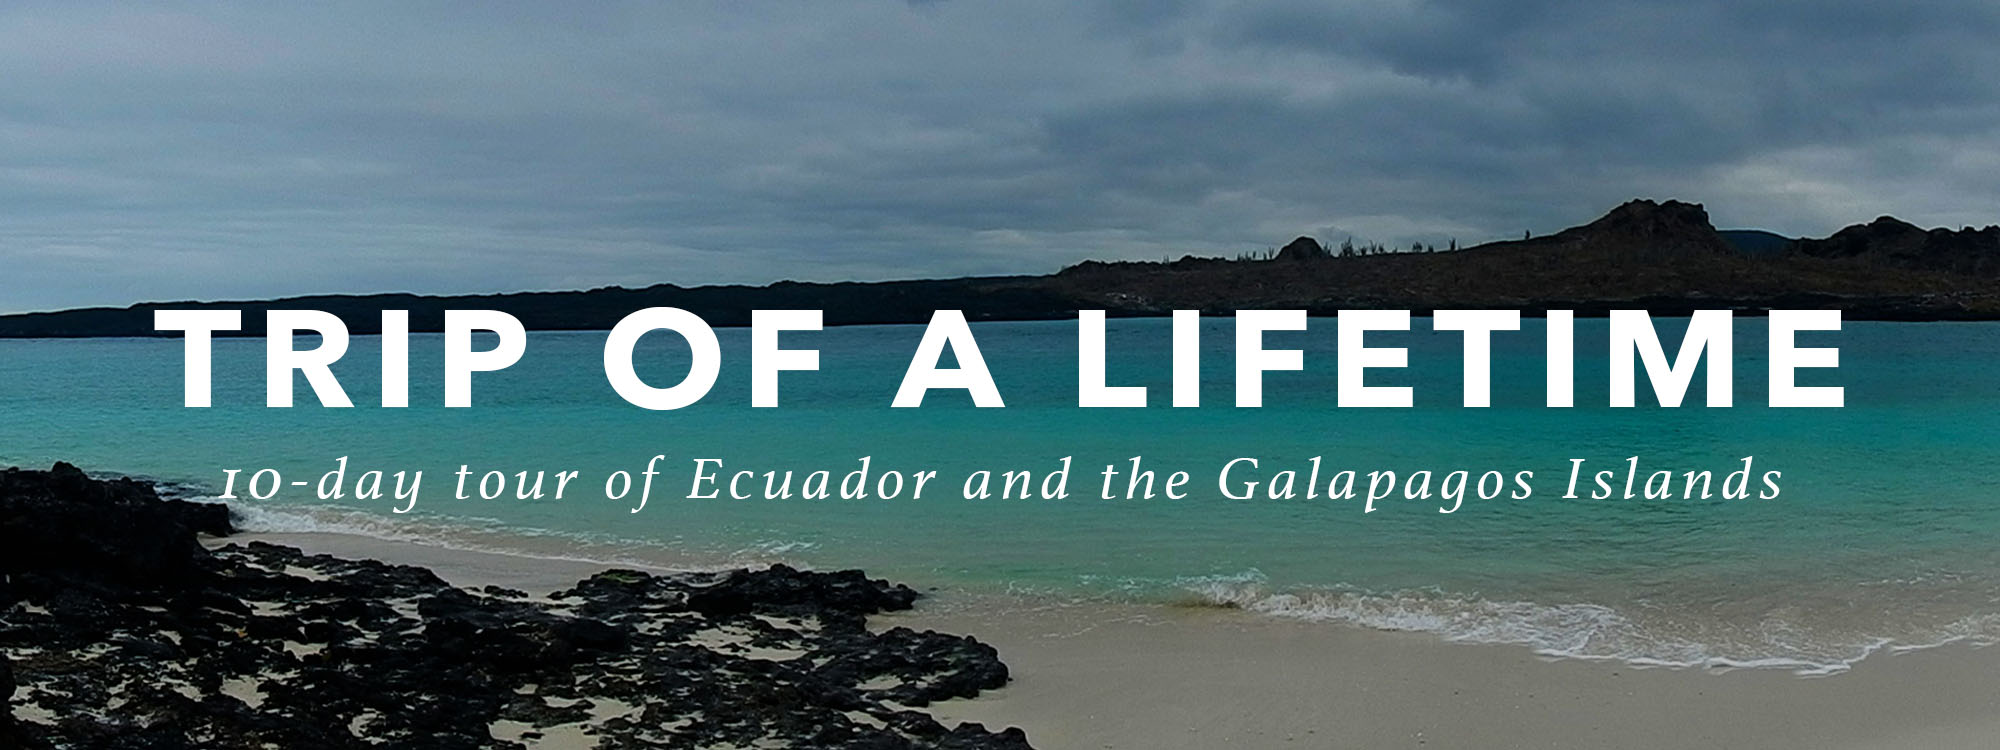 Trip of a Lifetime: 10 day tour of Ecuador and The Galapagos Islands